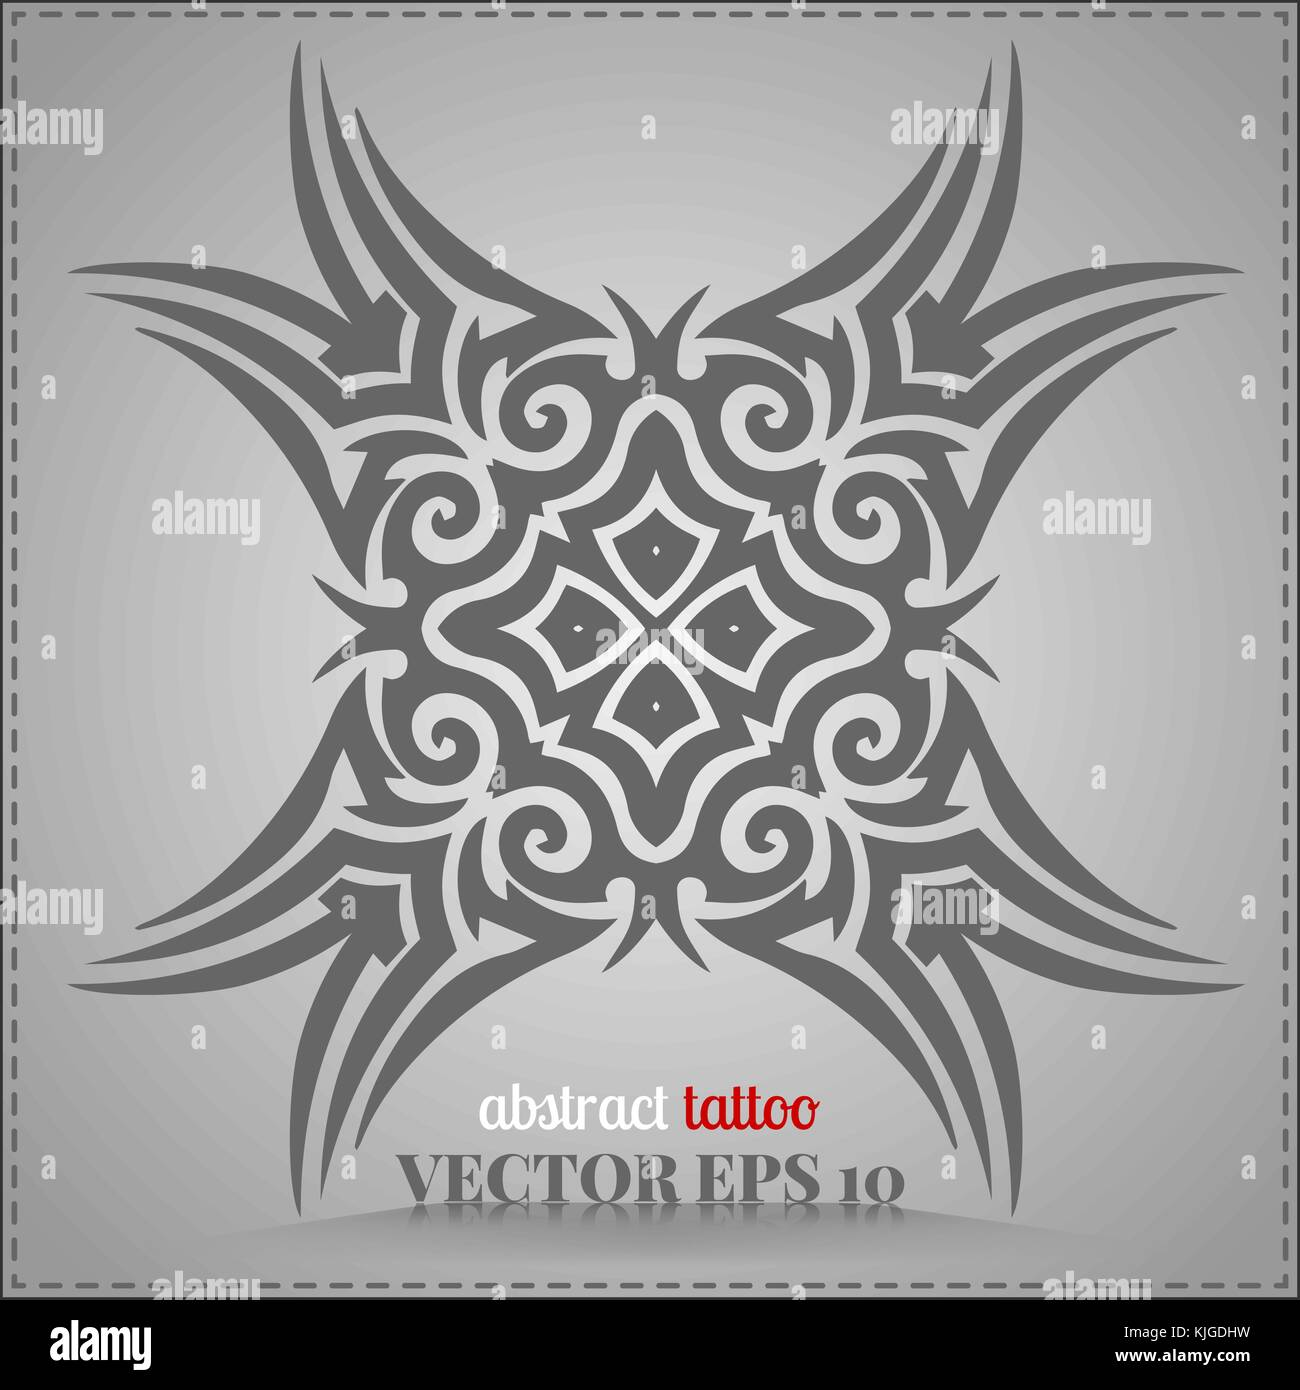 triquetra stockfotos triquetra bilder alamy. Black Bedroom Furniture Sets. Home Design Ideas